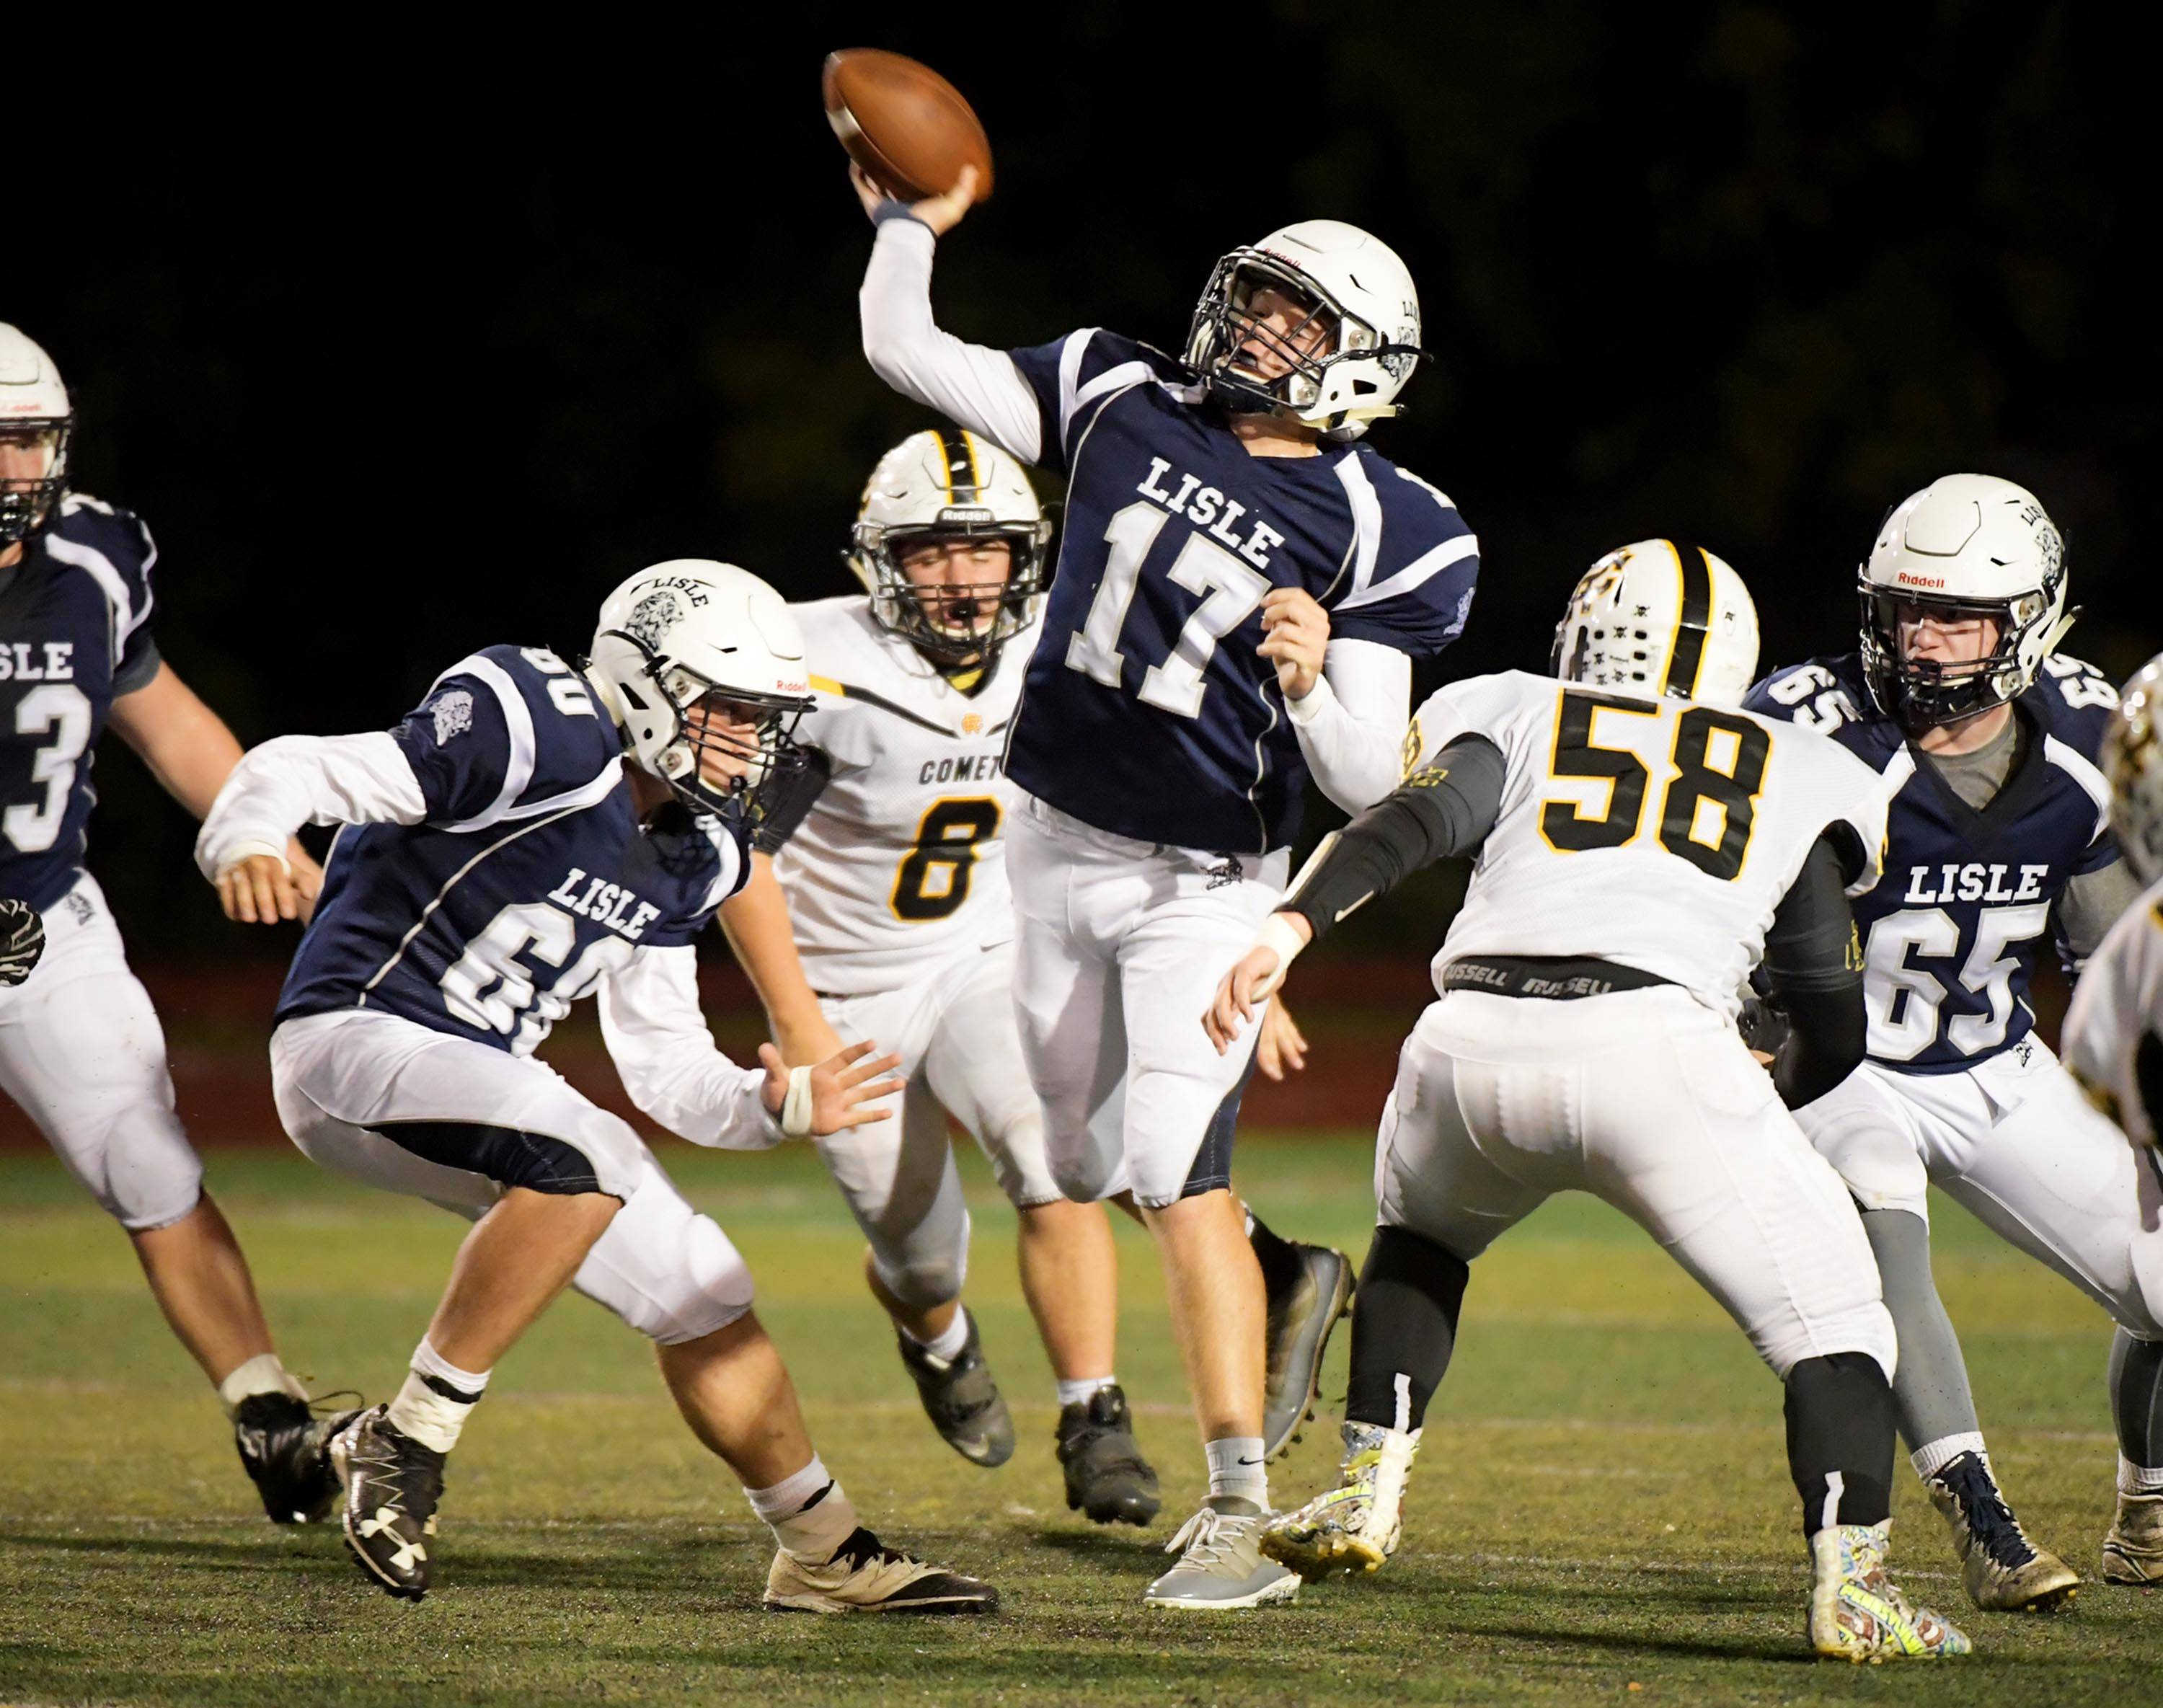 Led by quarterback Jay McGrath (17), Lisle will play at Coal City on Friday night with the goal of completing an undefeated regular season.